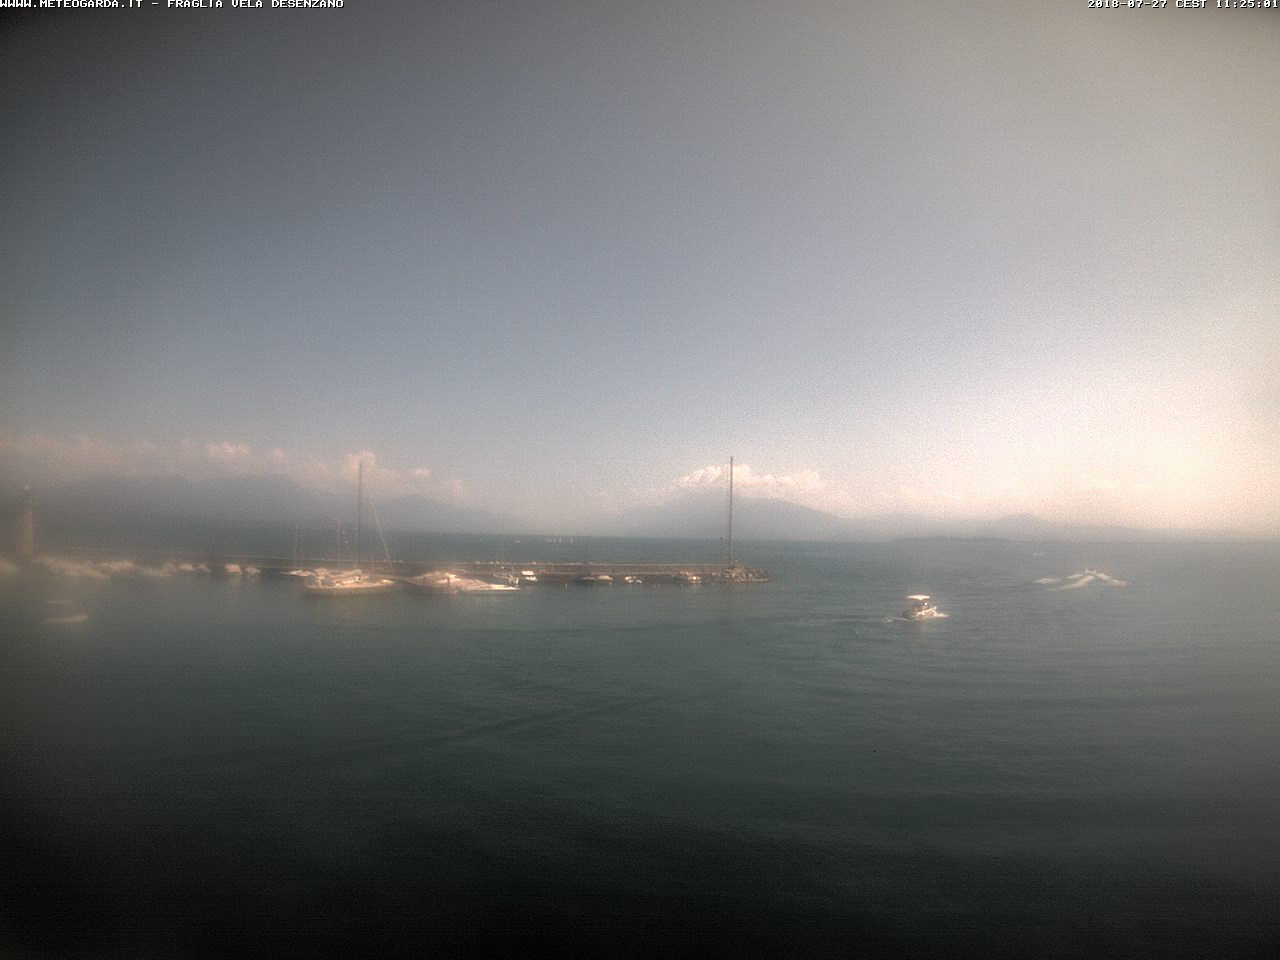 Webcam Desenzano